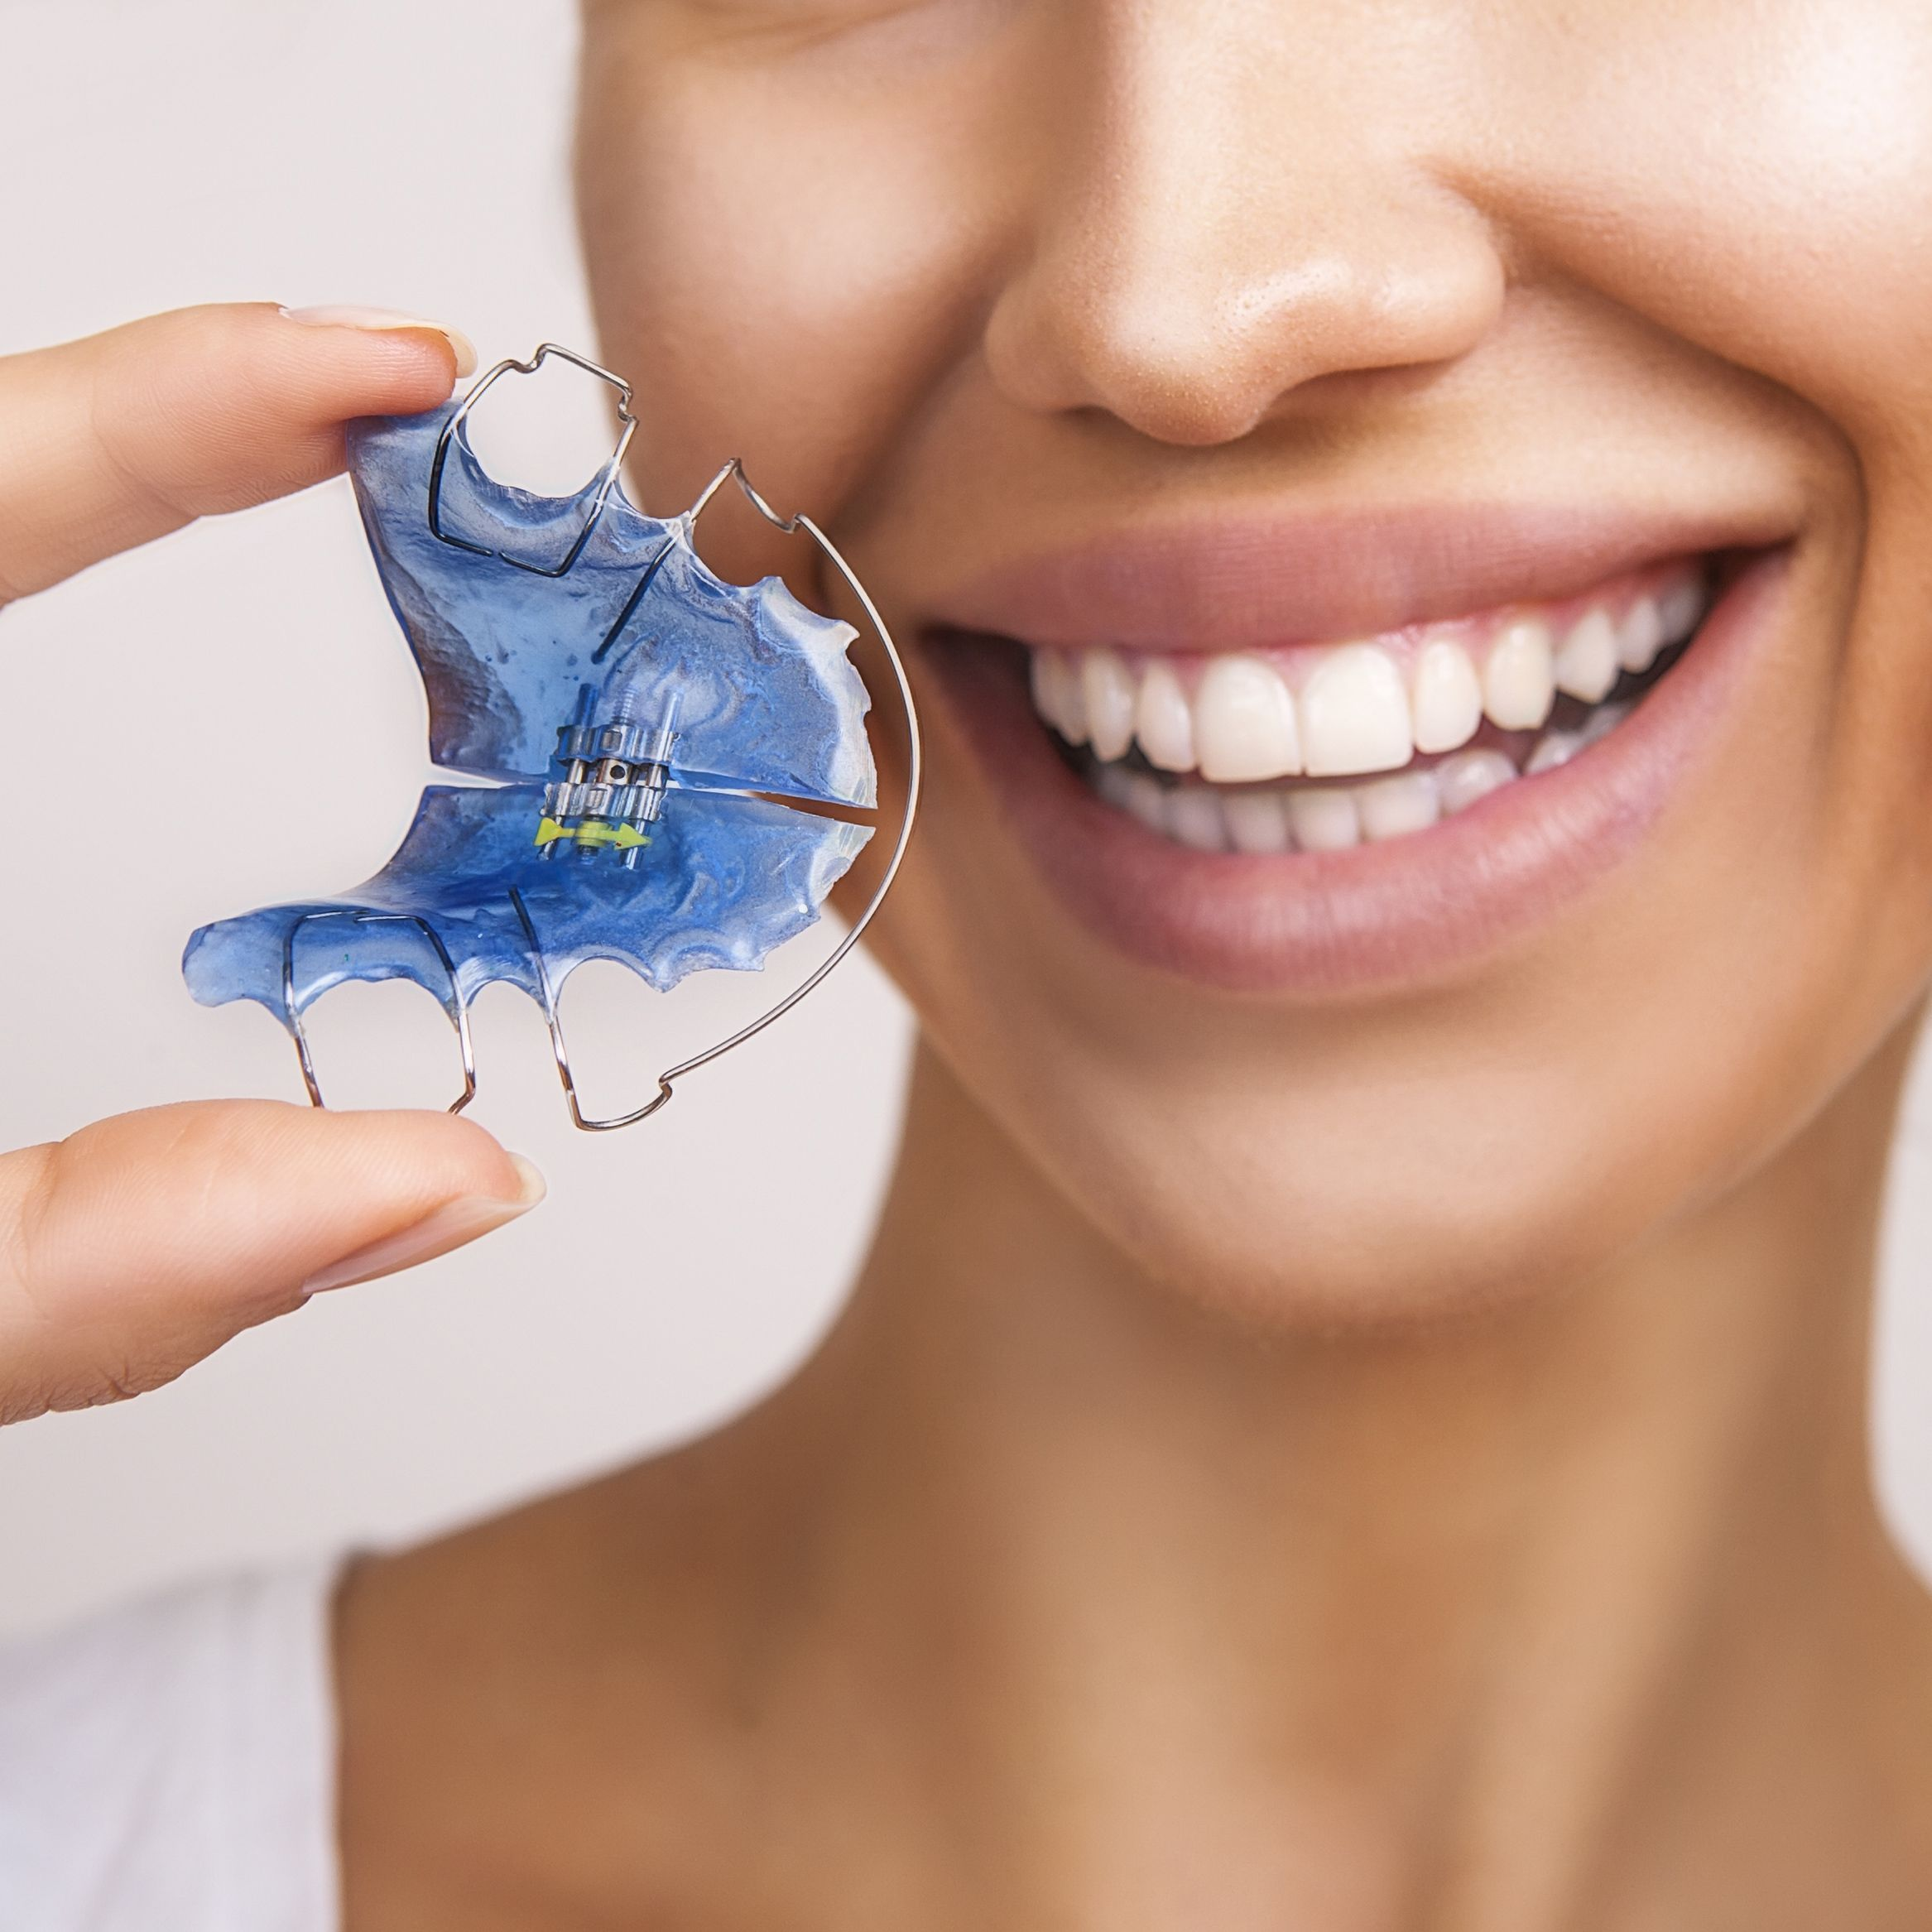 Female patient holding blue orthodontic retainer